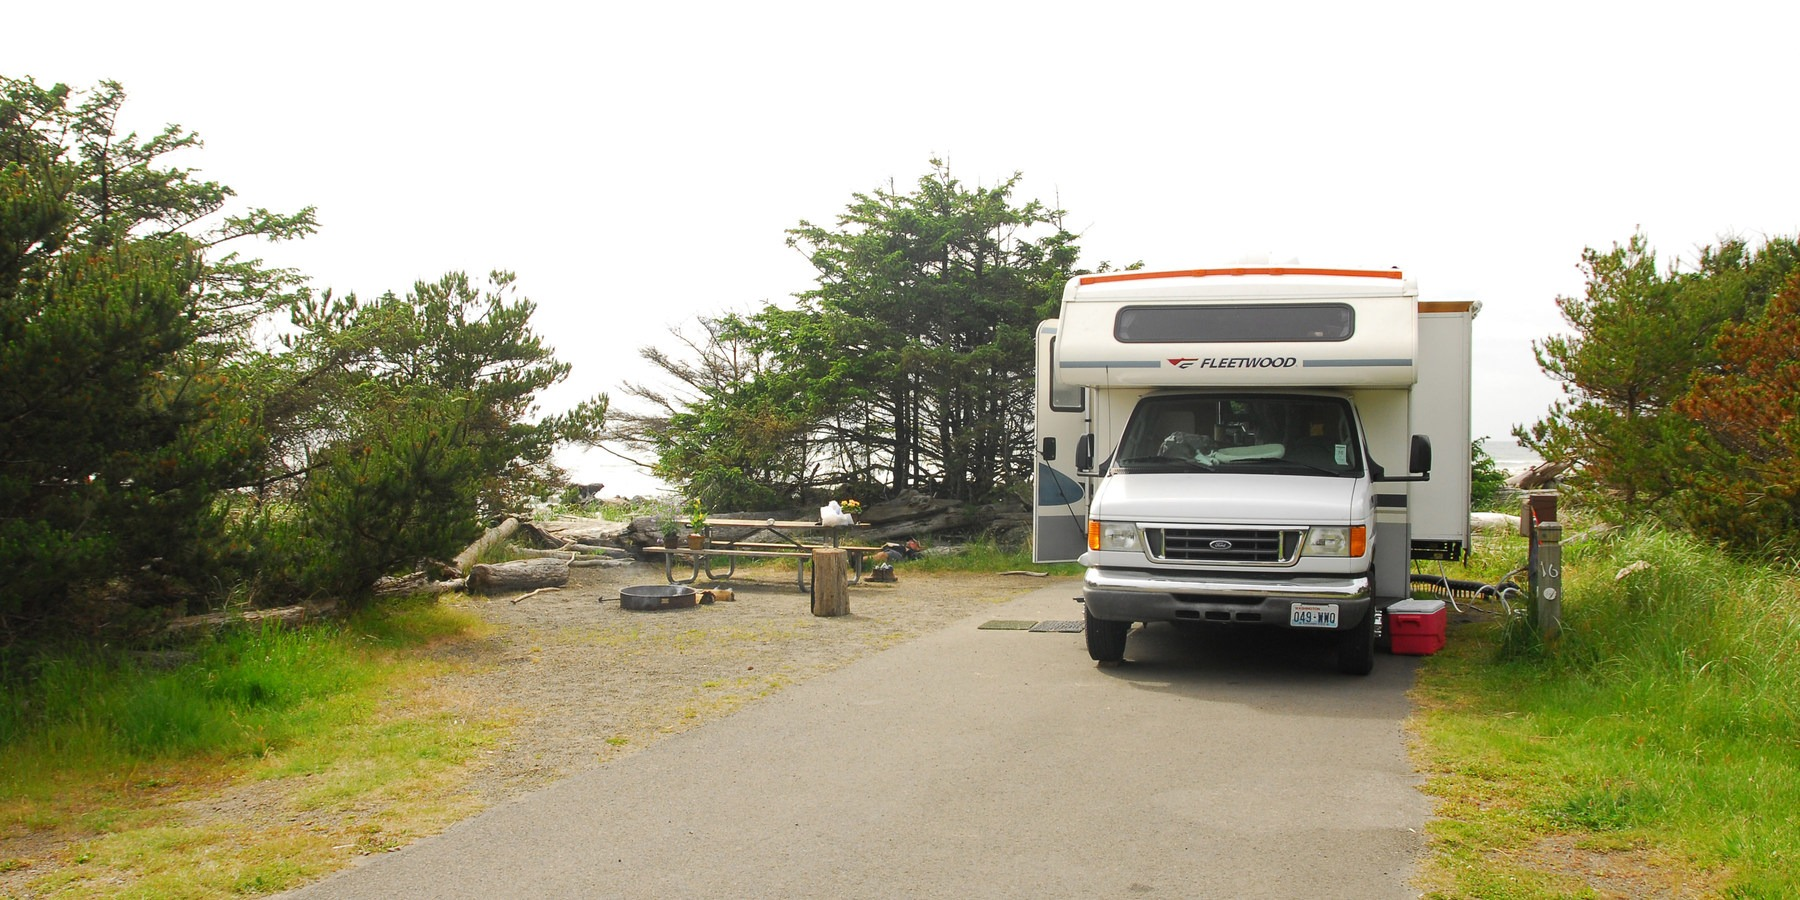 Campgrounds in oregon with full hookups